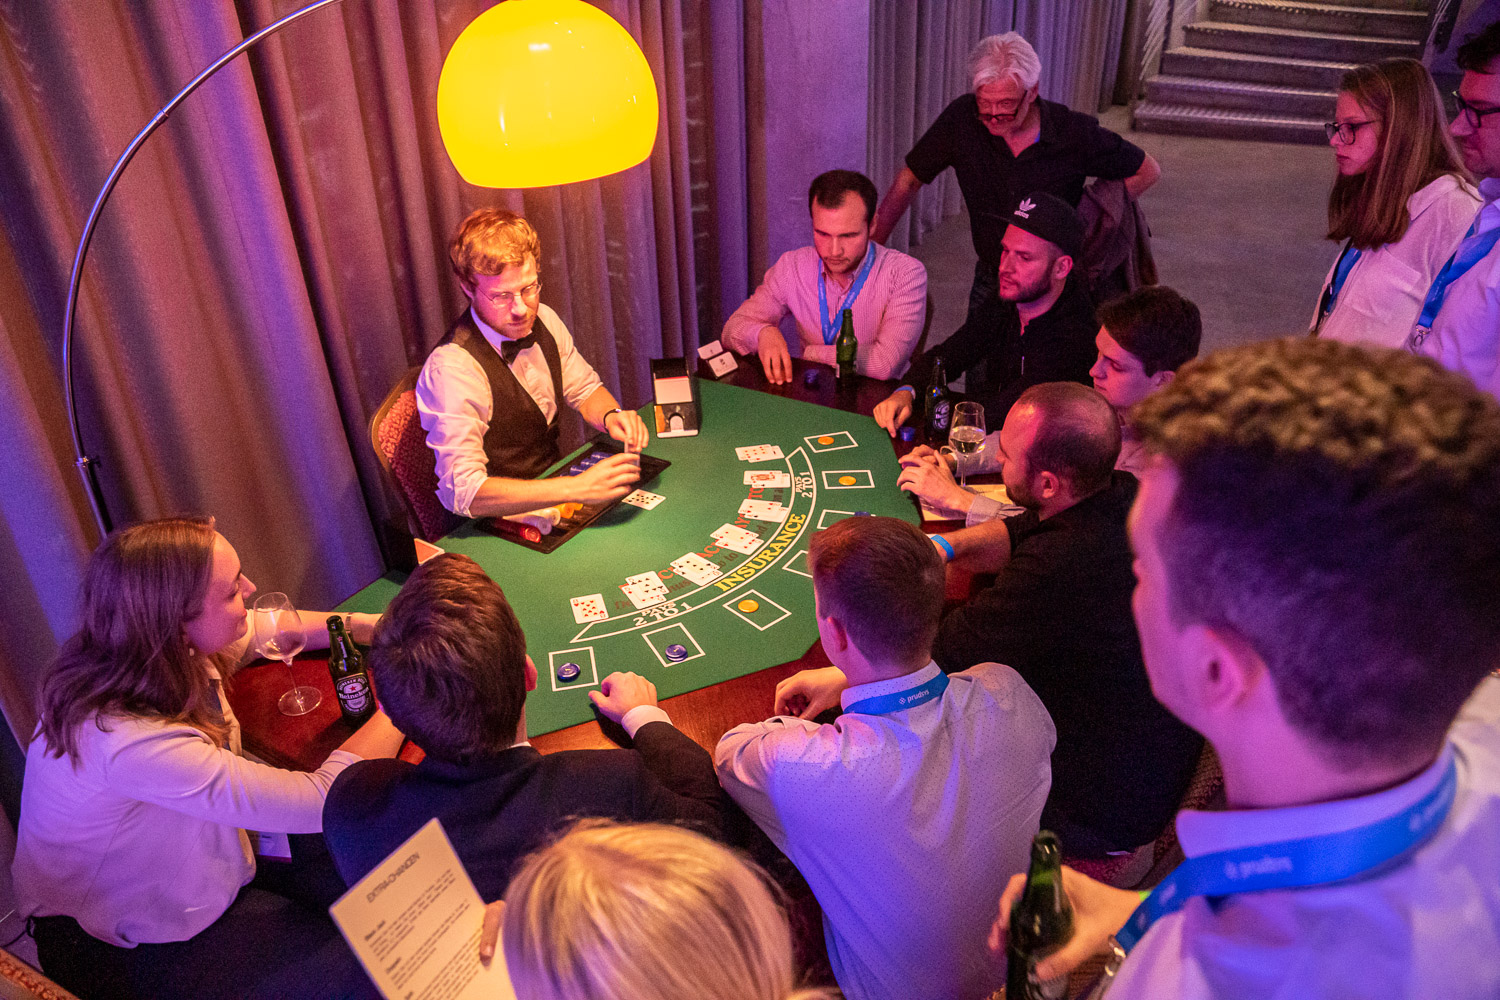 Casino auf der Get-Together-Party | prudsys retail intelligence summit | AI for Retail